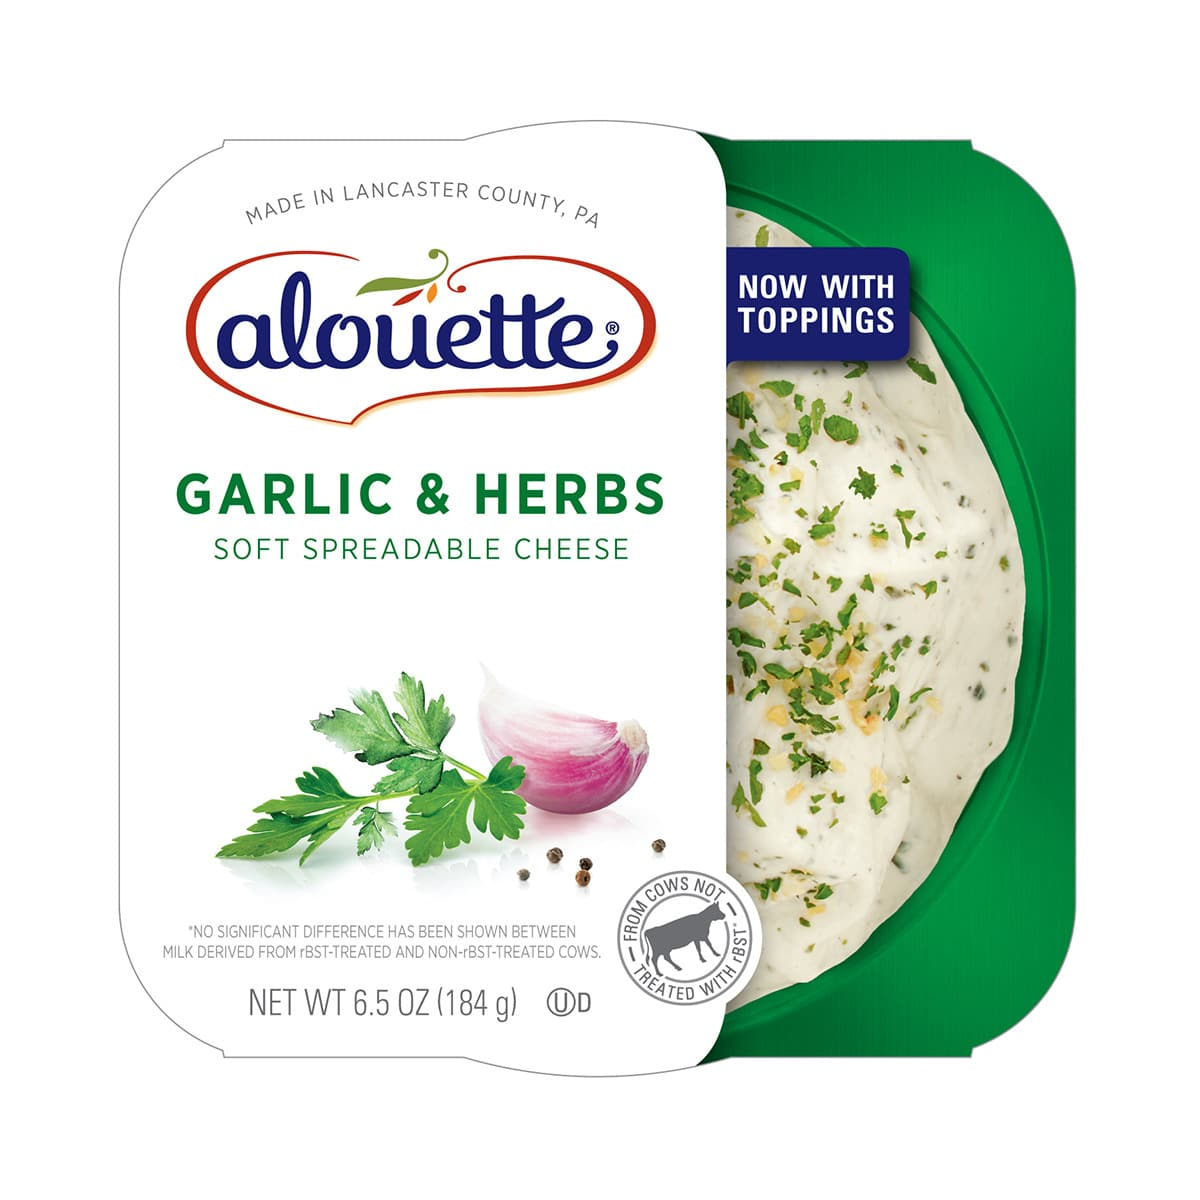 Alouette Garlic & herbs soft spreadable cheese packaging